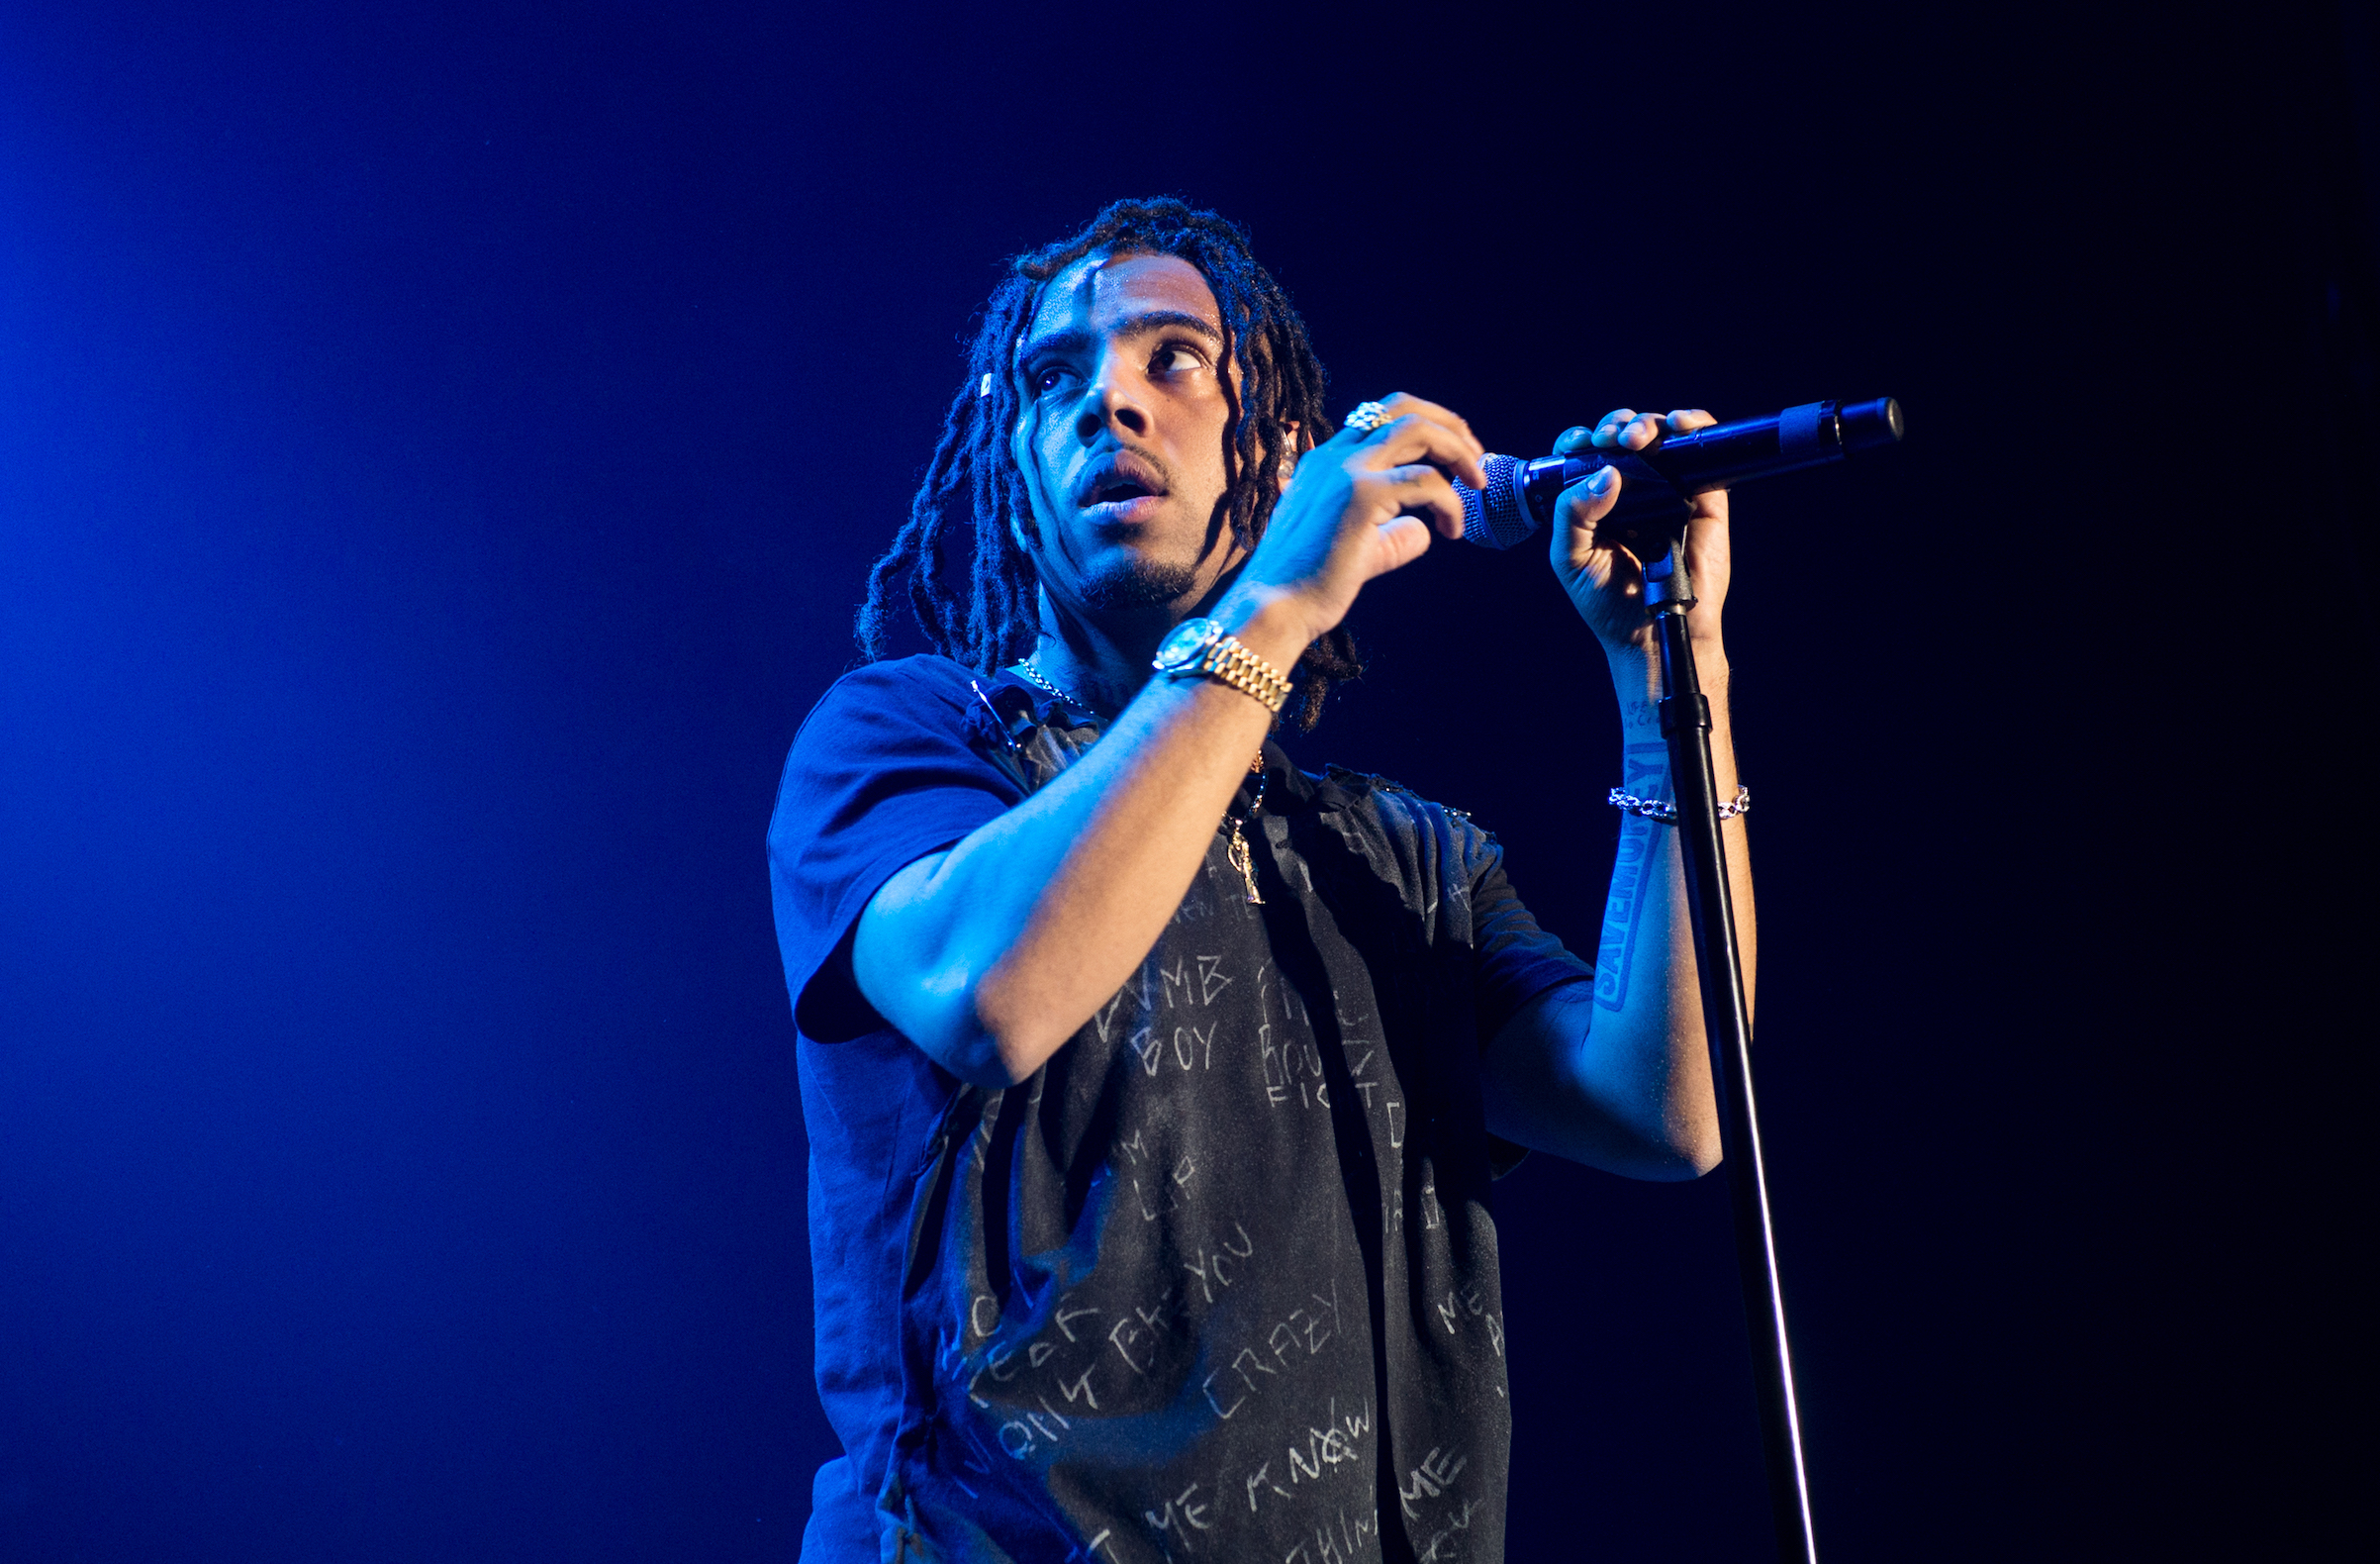 Vic Mensa performs in concert at The Bowery Ballroom on Sept. 30, 2017 in New York City.